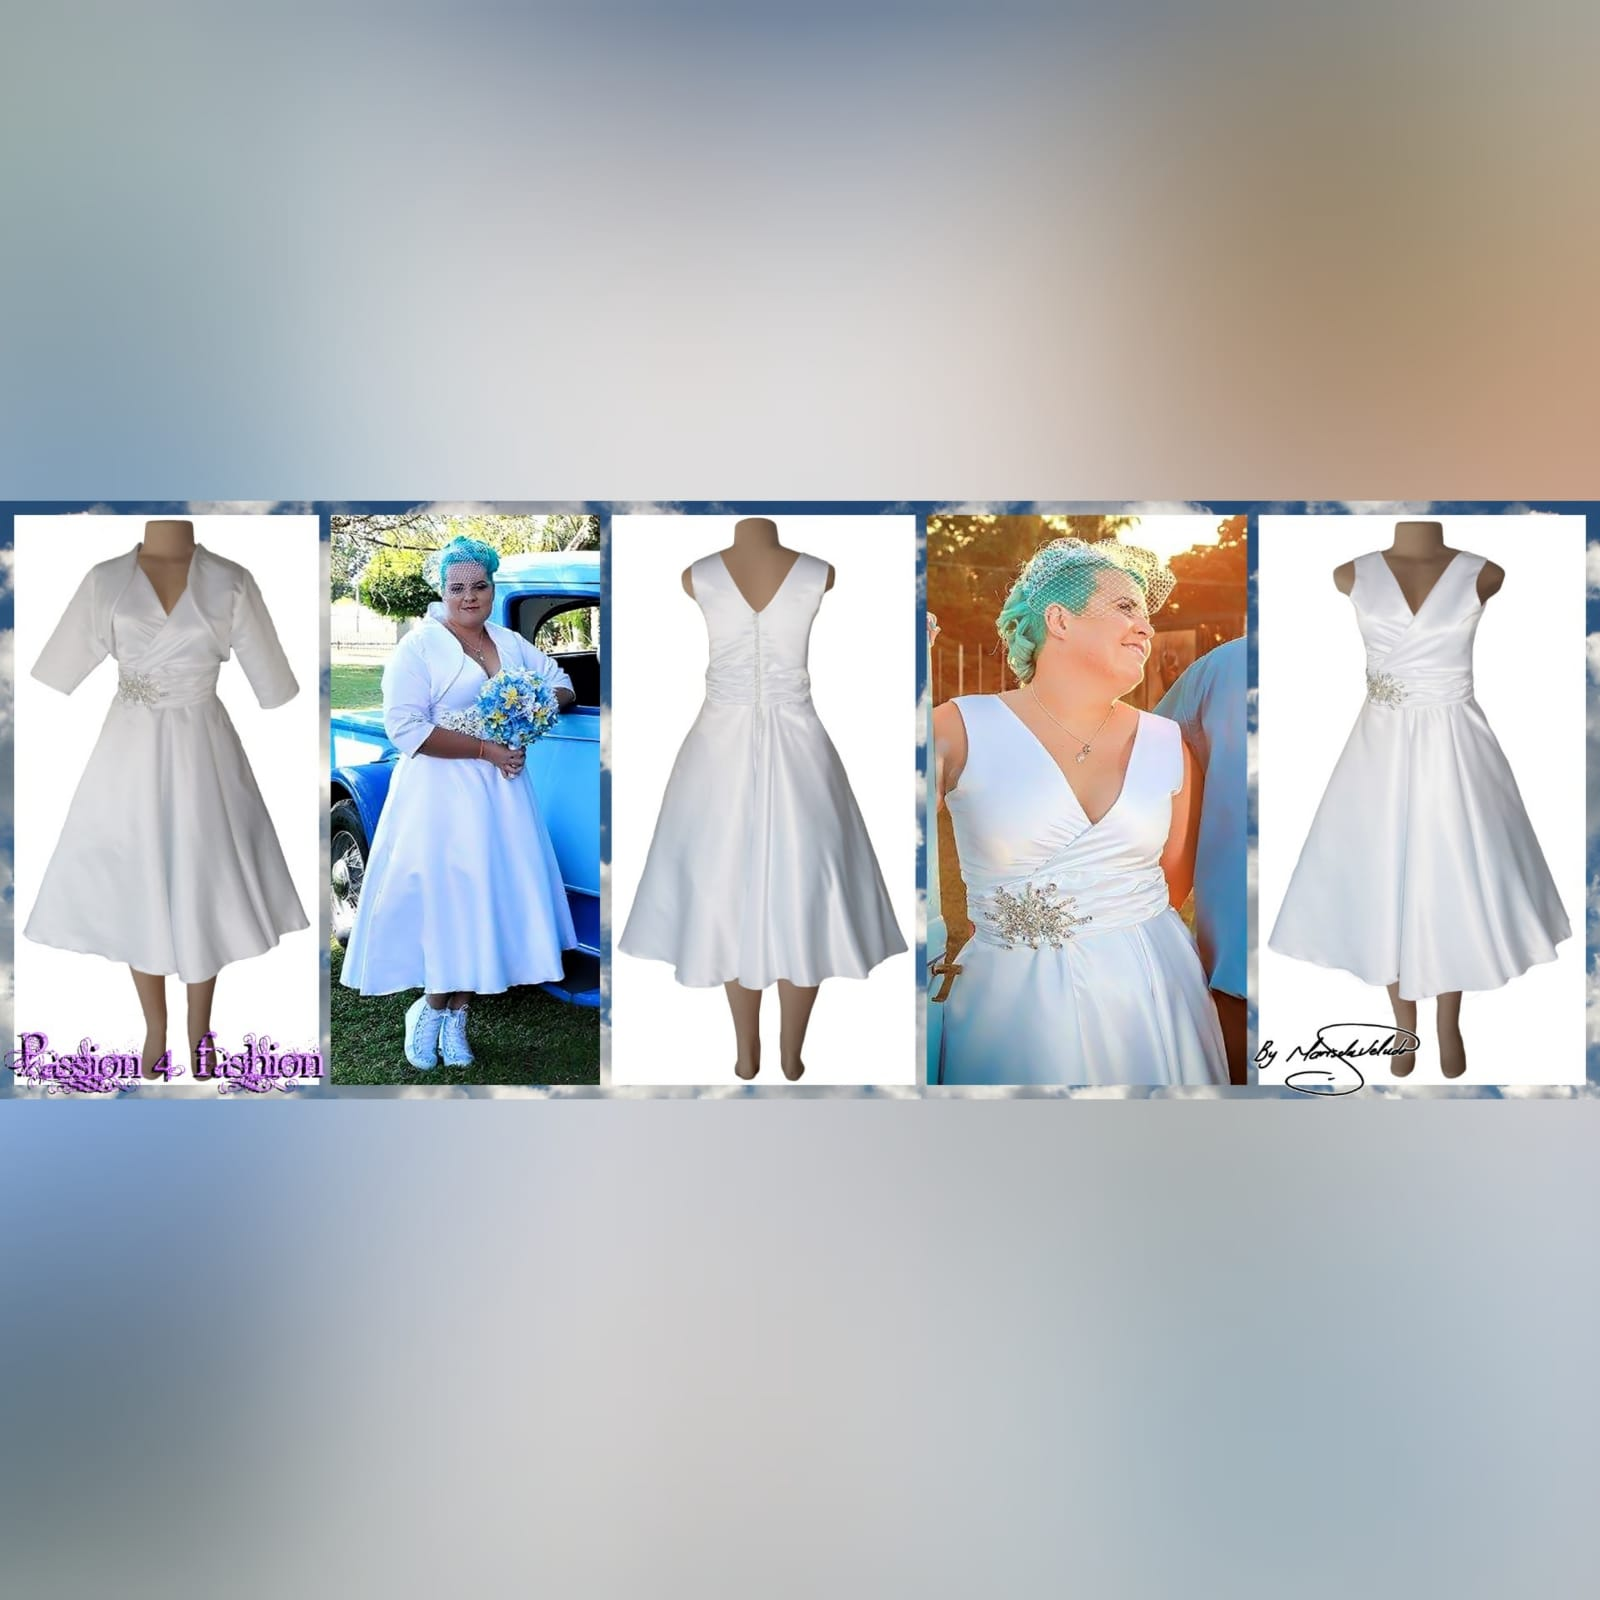 White satin 3/4 length v neck custom made wedding dress 3 white satin 3/4 length v neck custom made wedding dress, with a cross bust effect, with a ruched belt detailed with silver bling. Back detailed with buttons. With a 3/4 sleeve rounded white bolero.